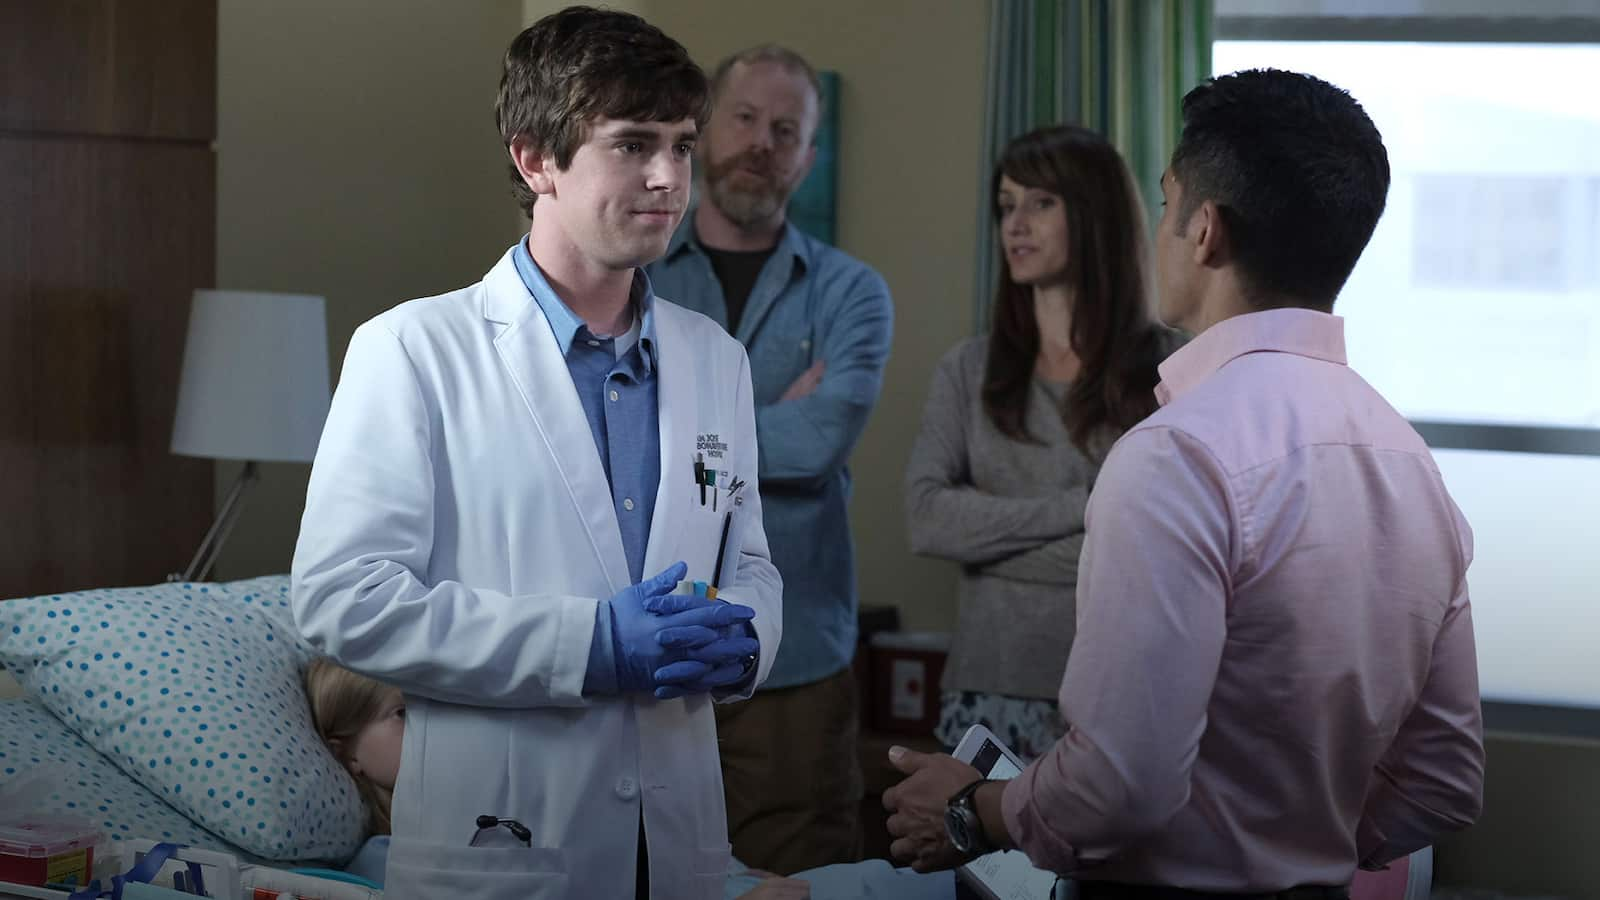 the-good-doctor/sesong-1/episode-2